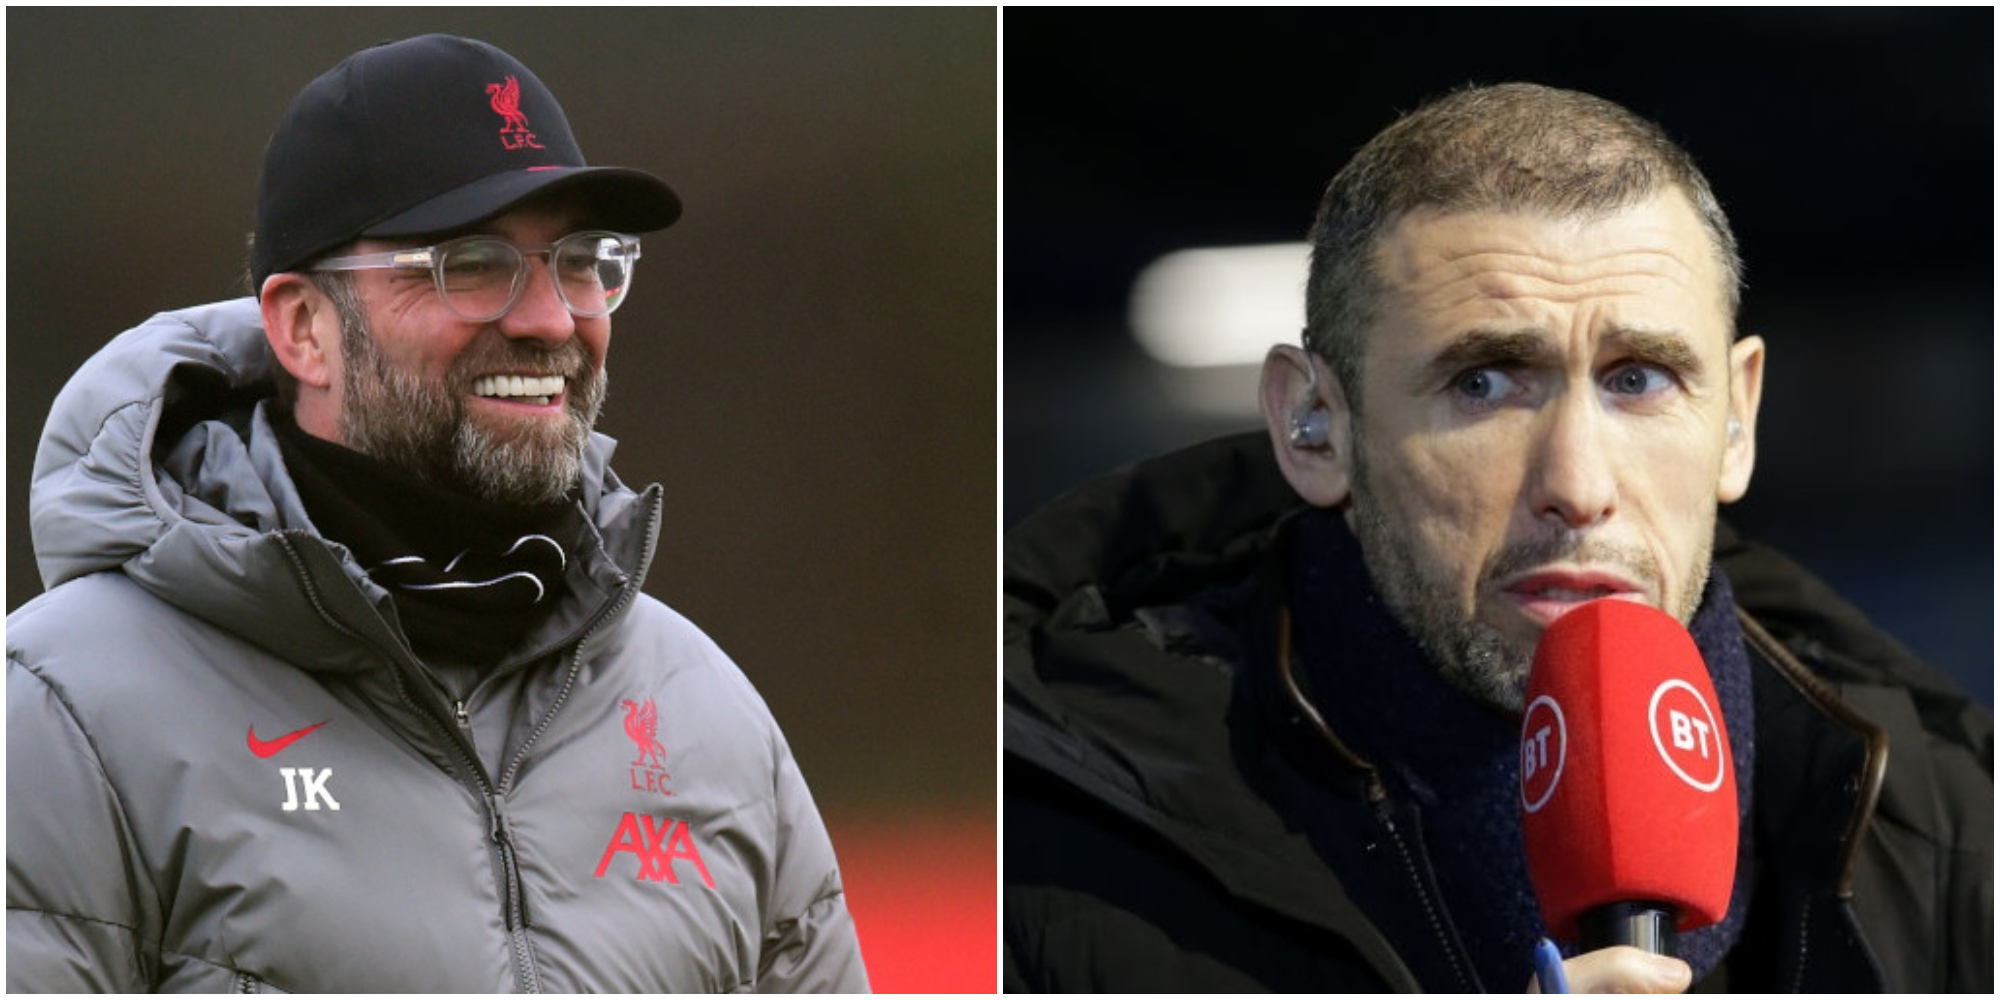 Keown says Klopp was wrong to put faith in midfielders as makeshift defenders